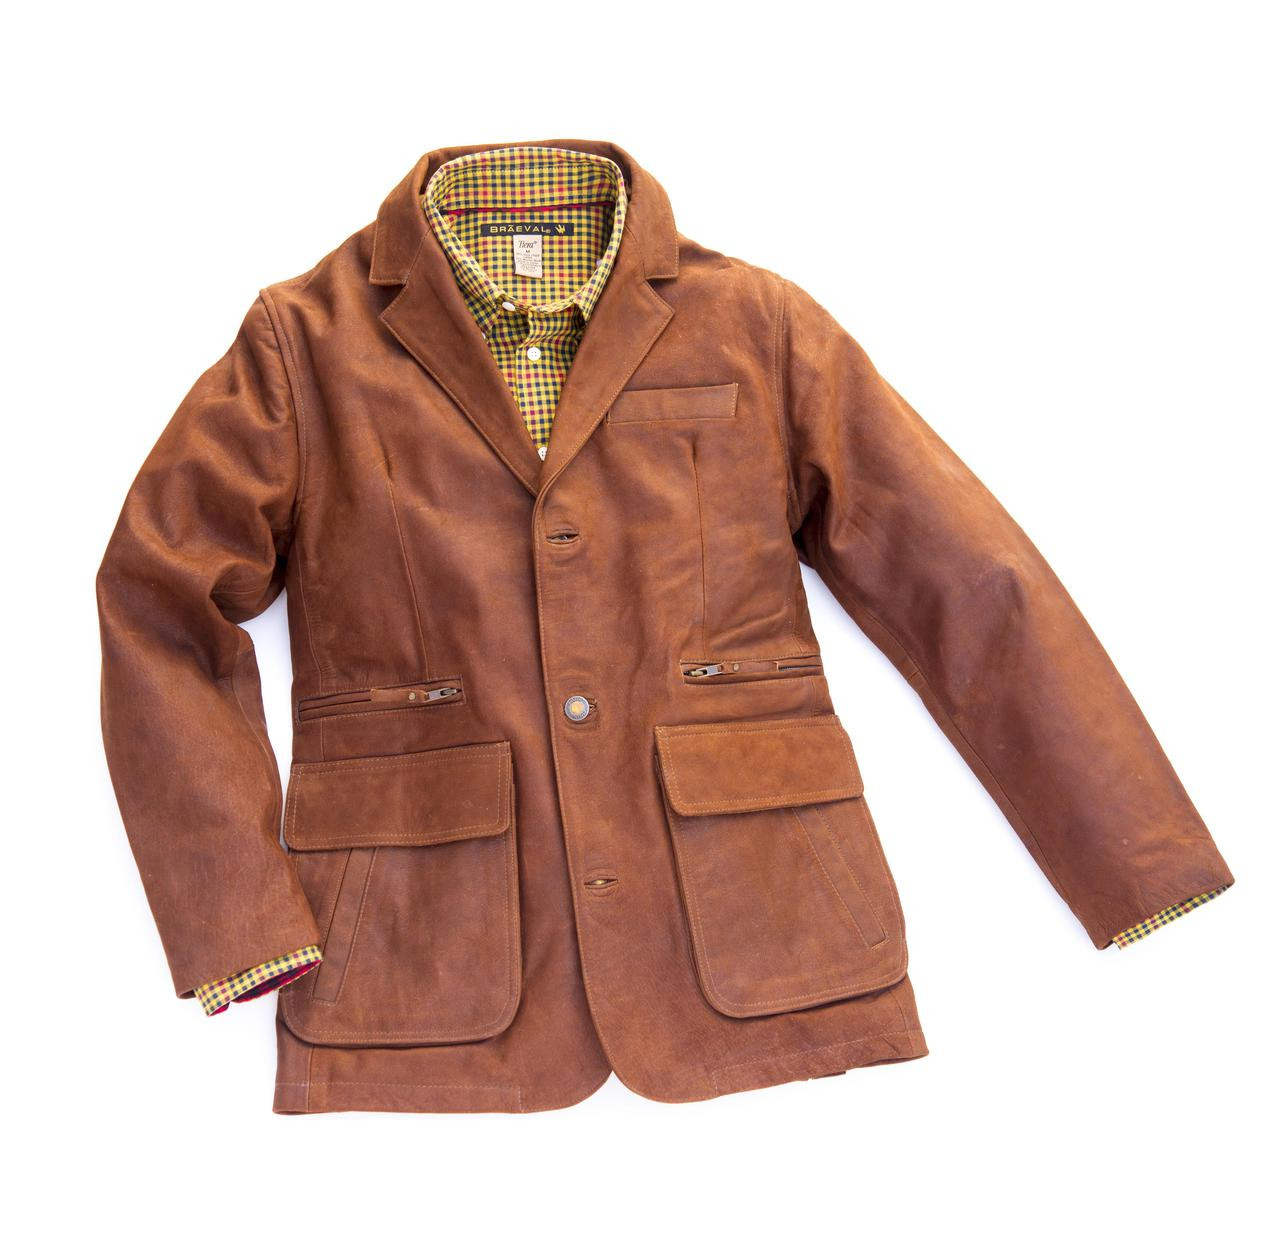 Exventurer Waxed Buffalo Sports Jacket - Chestnut Brown